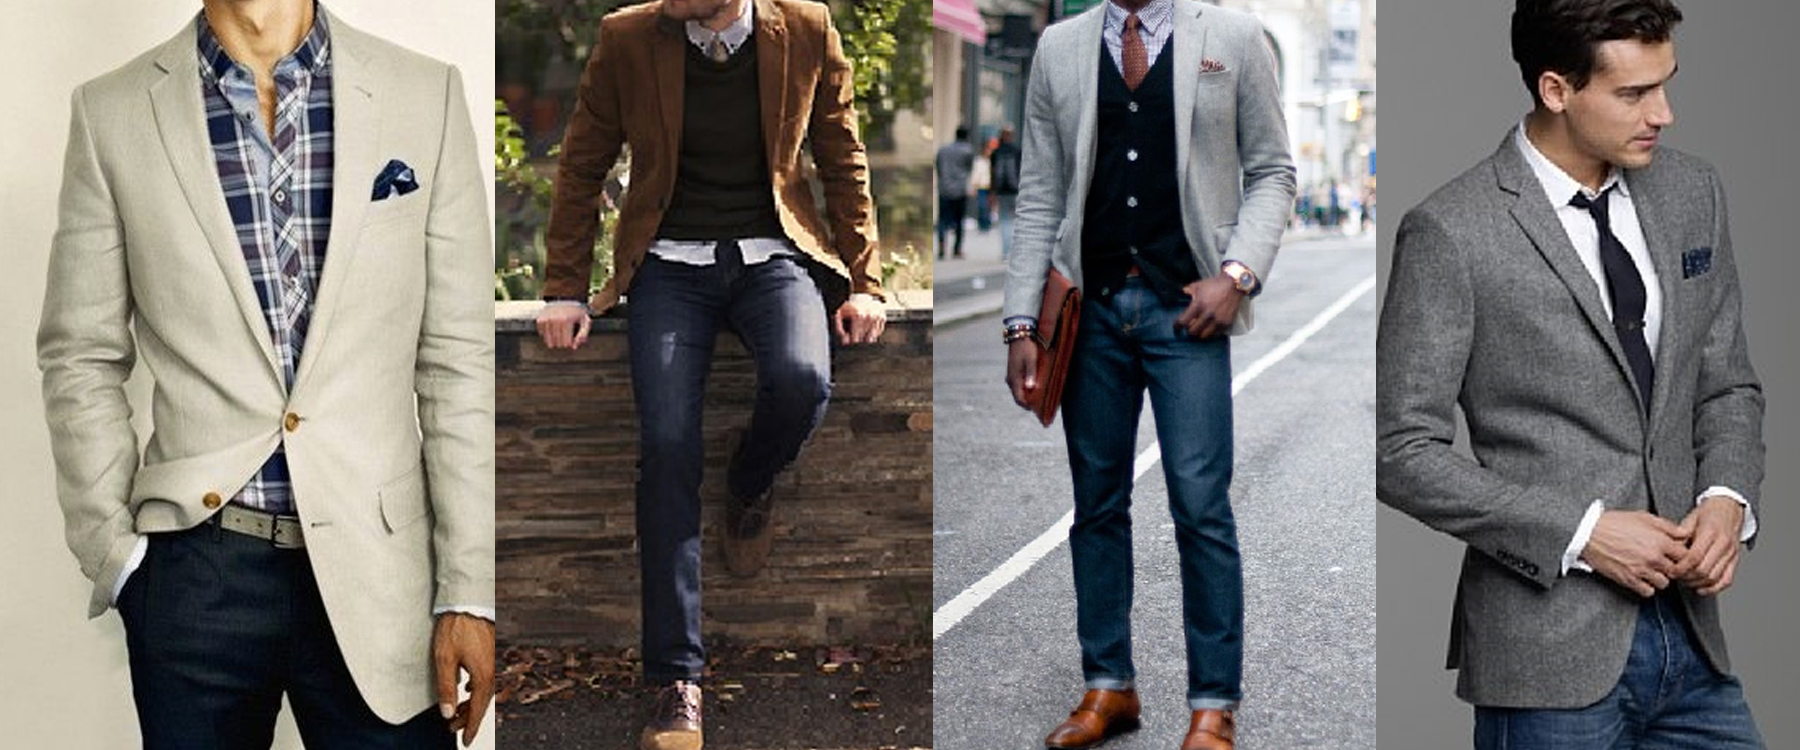 Image result for blazer and jeans men look